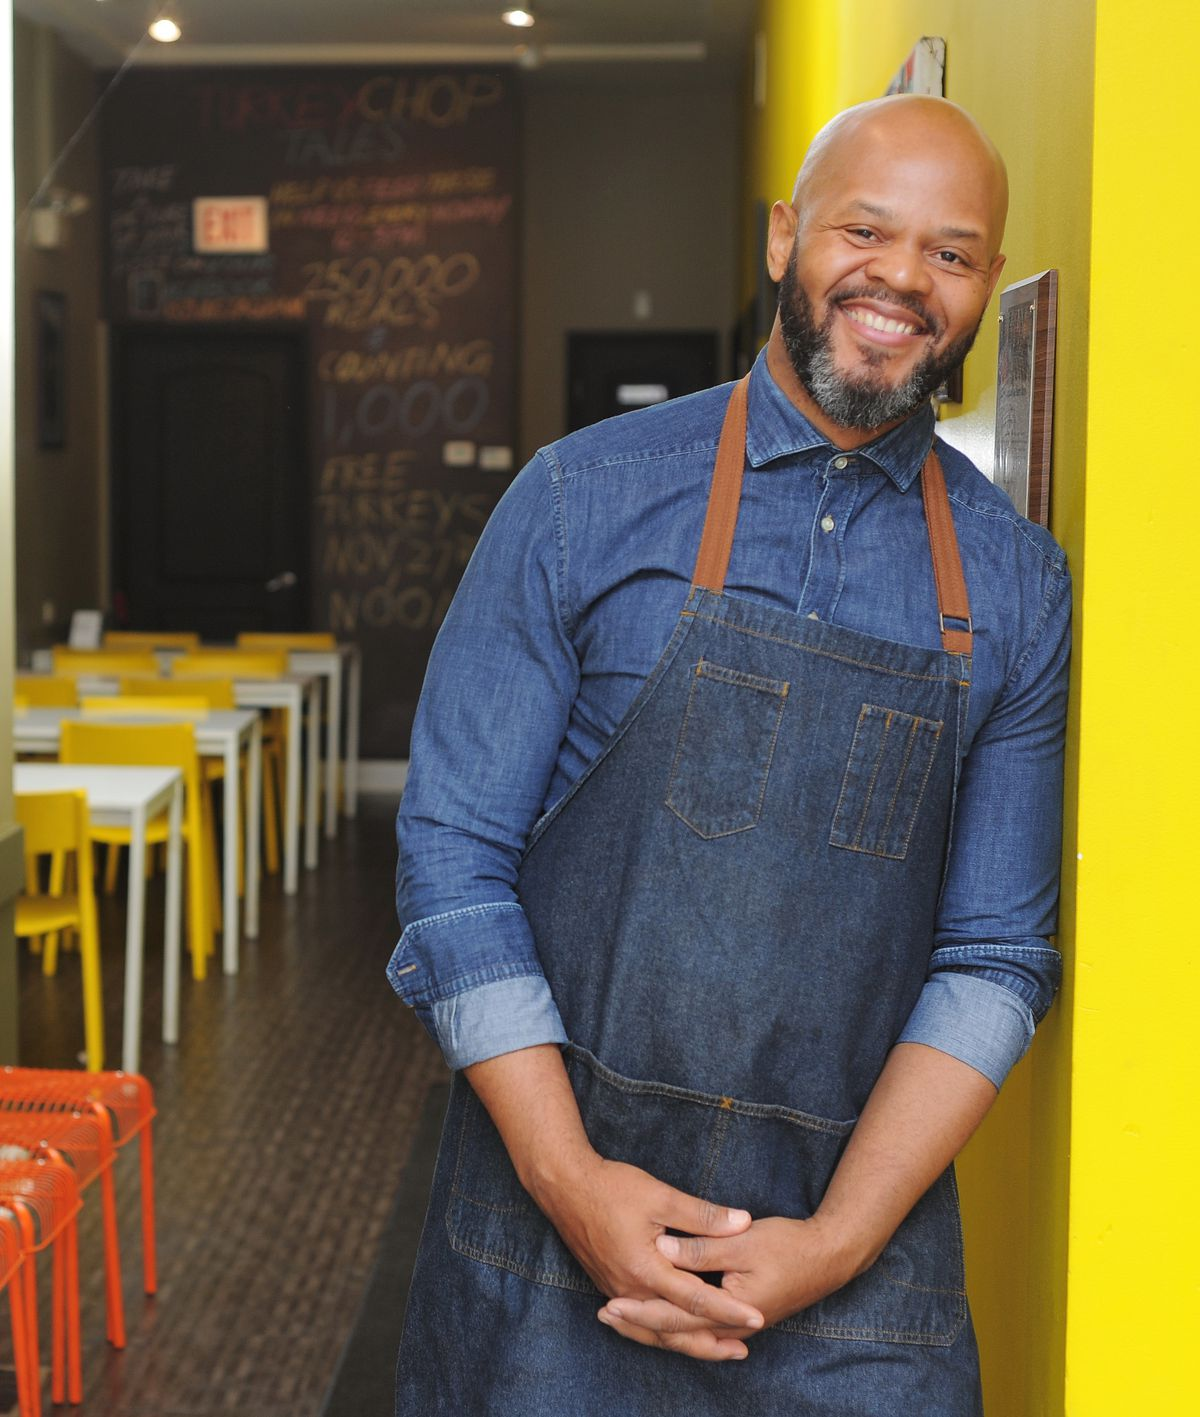 Over the past four years, Chicago Chef Quentin Love has given away 250,000 free meals, more than 7,000 turkeys at Thanksgiving and $25,000 worth of toys, scarves, hats and gloves to area residents in need.